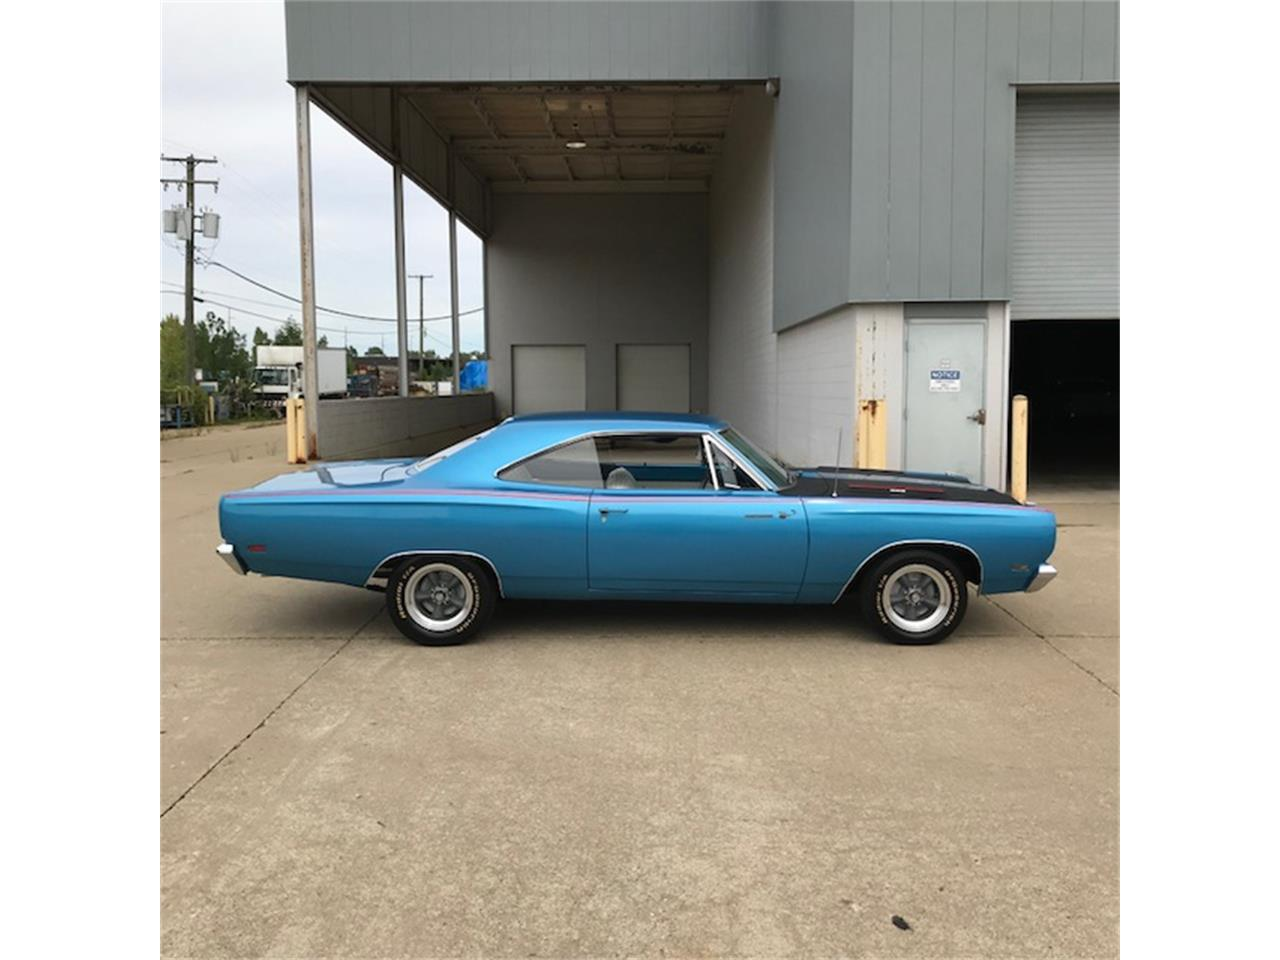 Large Picture of 1969 Plymouth Road Runner located in Fort Myers, Macomb, MI Florida - $32,900.00 Offered by More Muscle Cars - OJ60